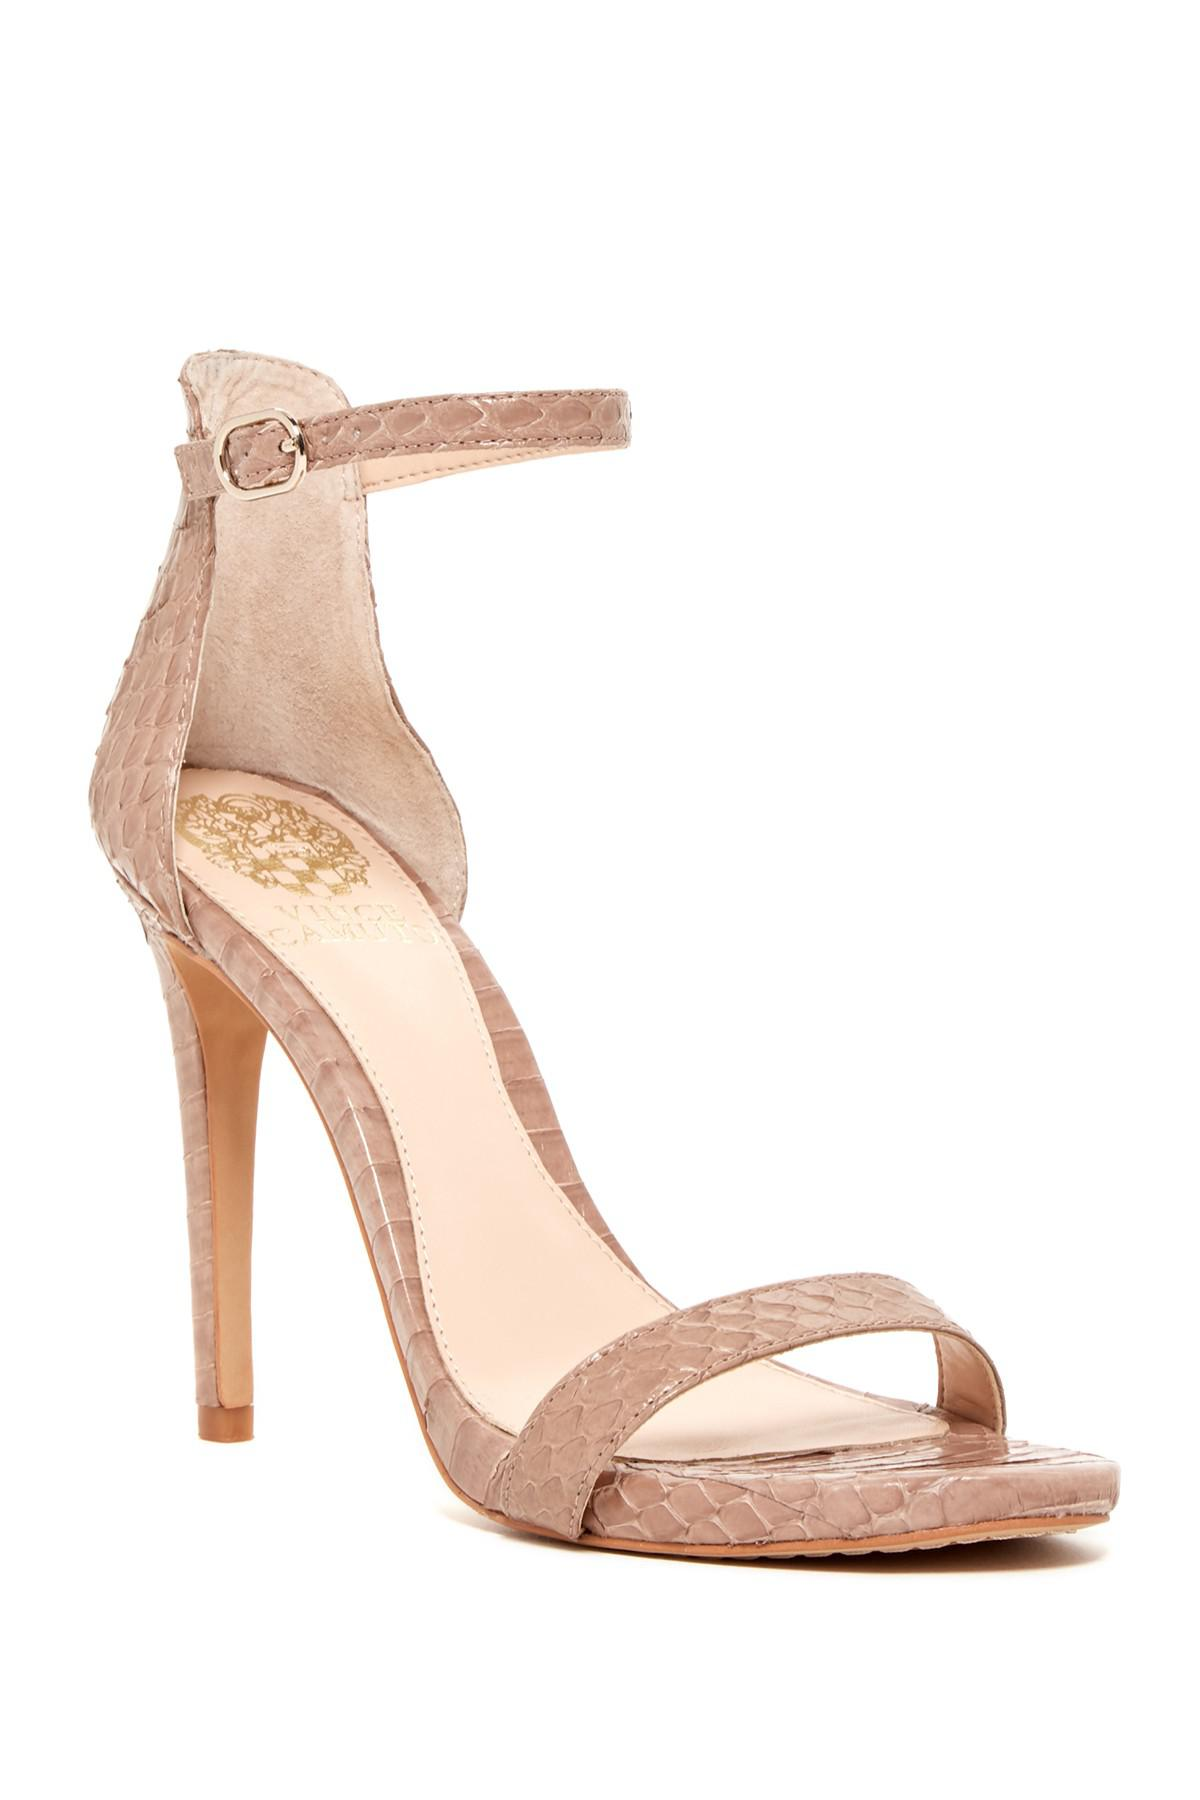 b7ce625cdea Lyst - Vince Camuto Frenchie Heel Sandal